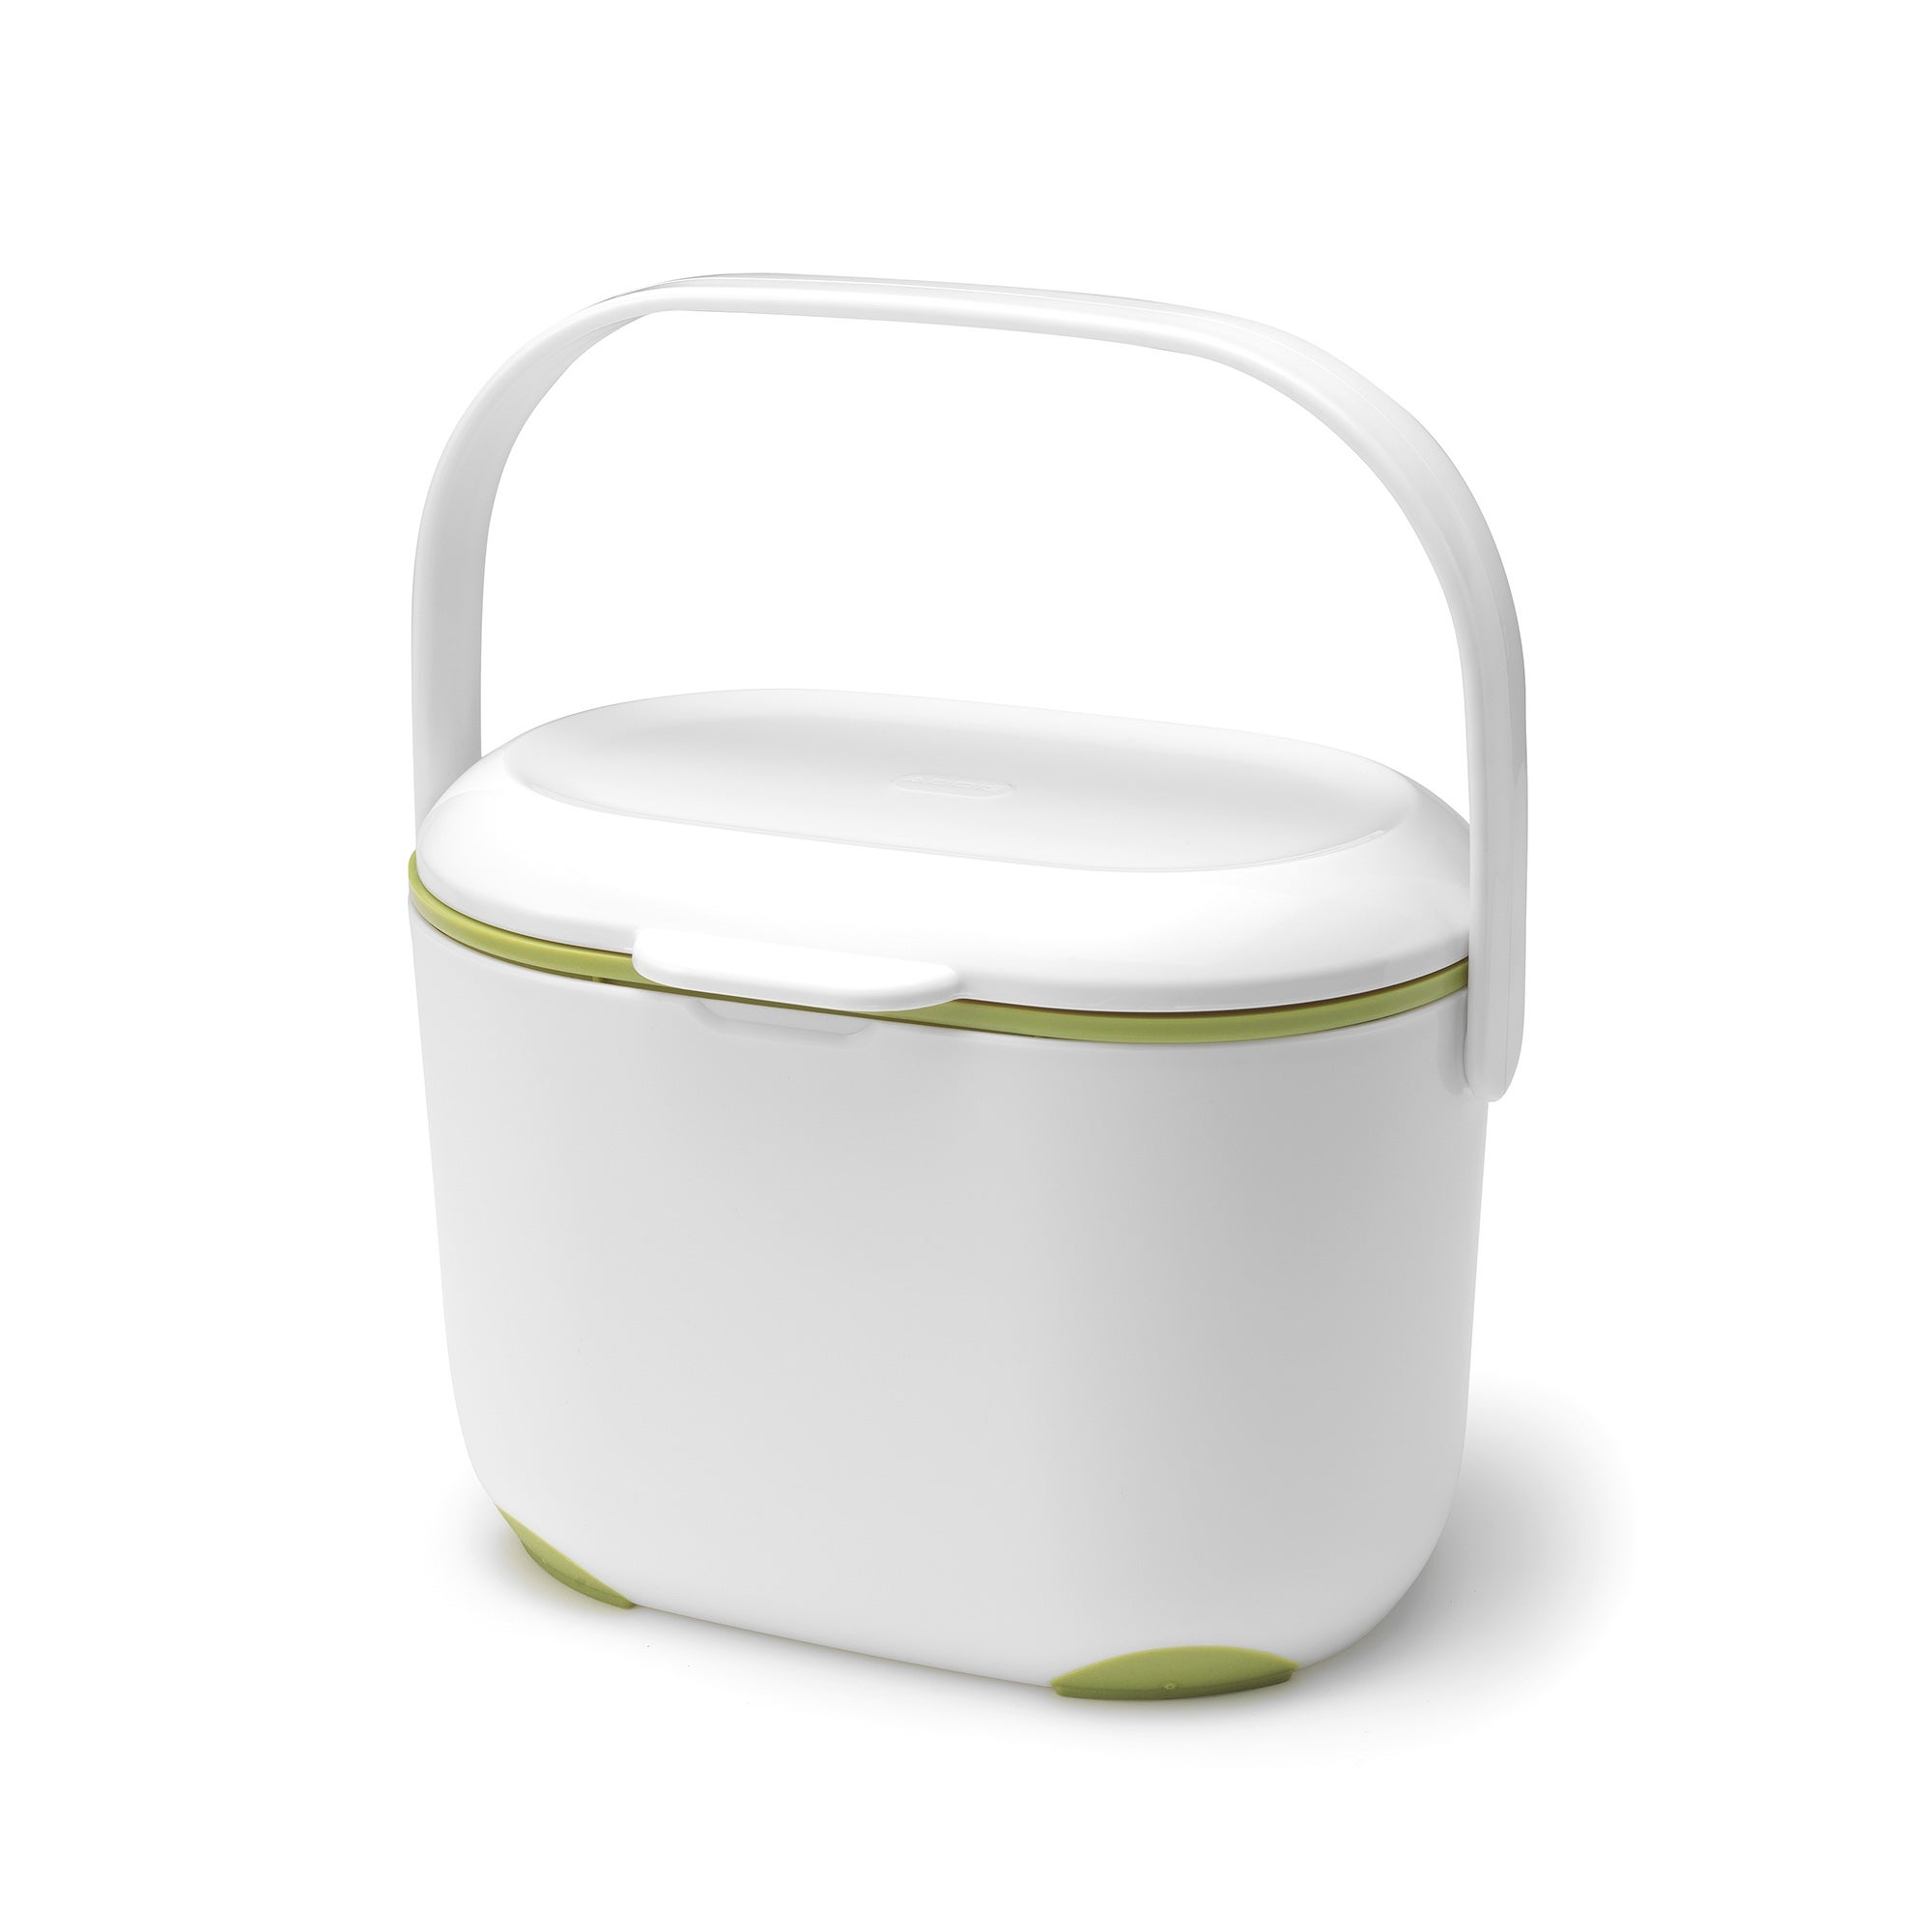 Addis 2.5 litre Compost Caddy Green